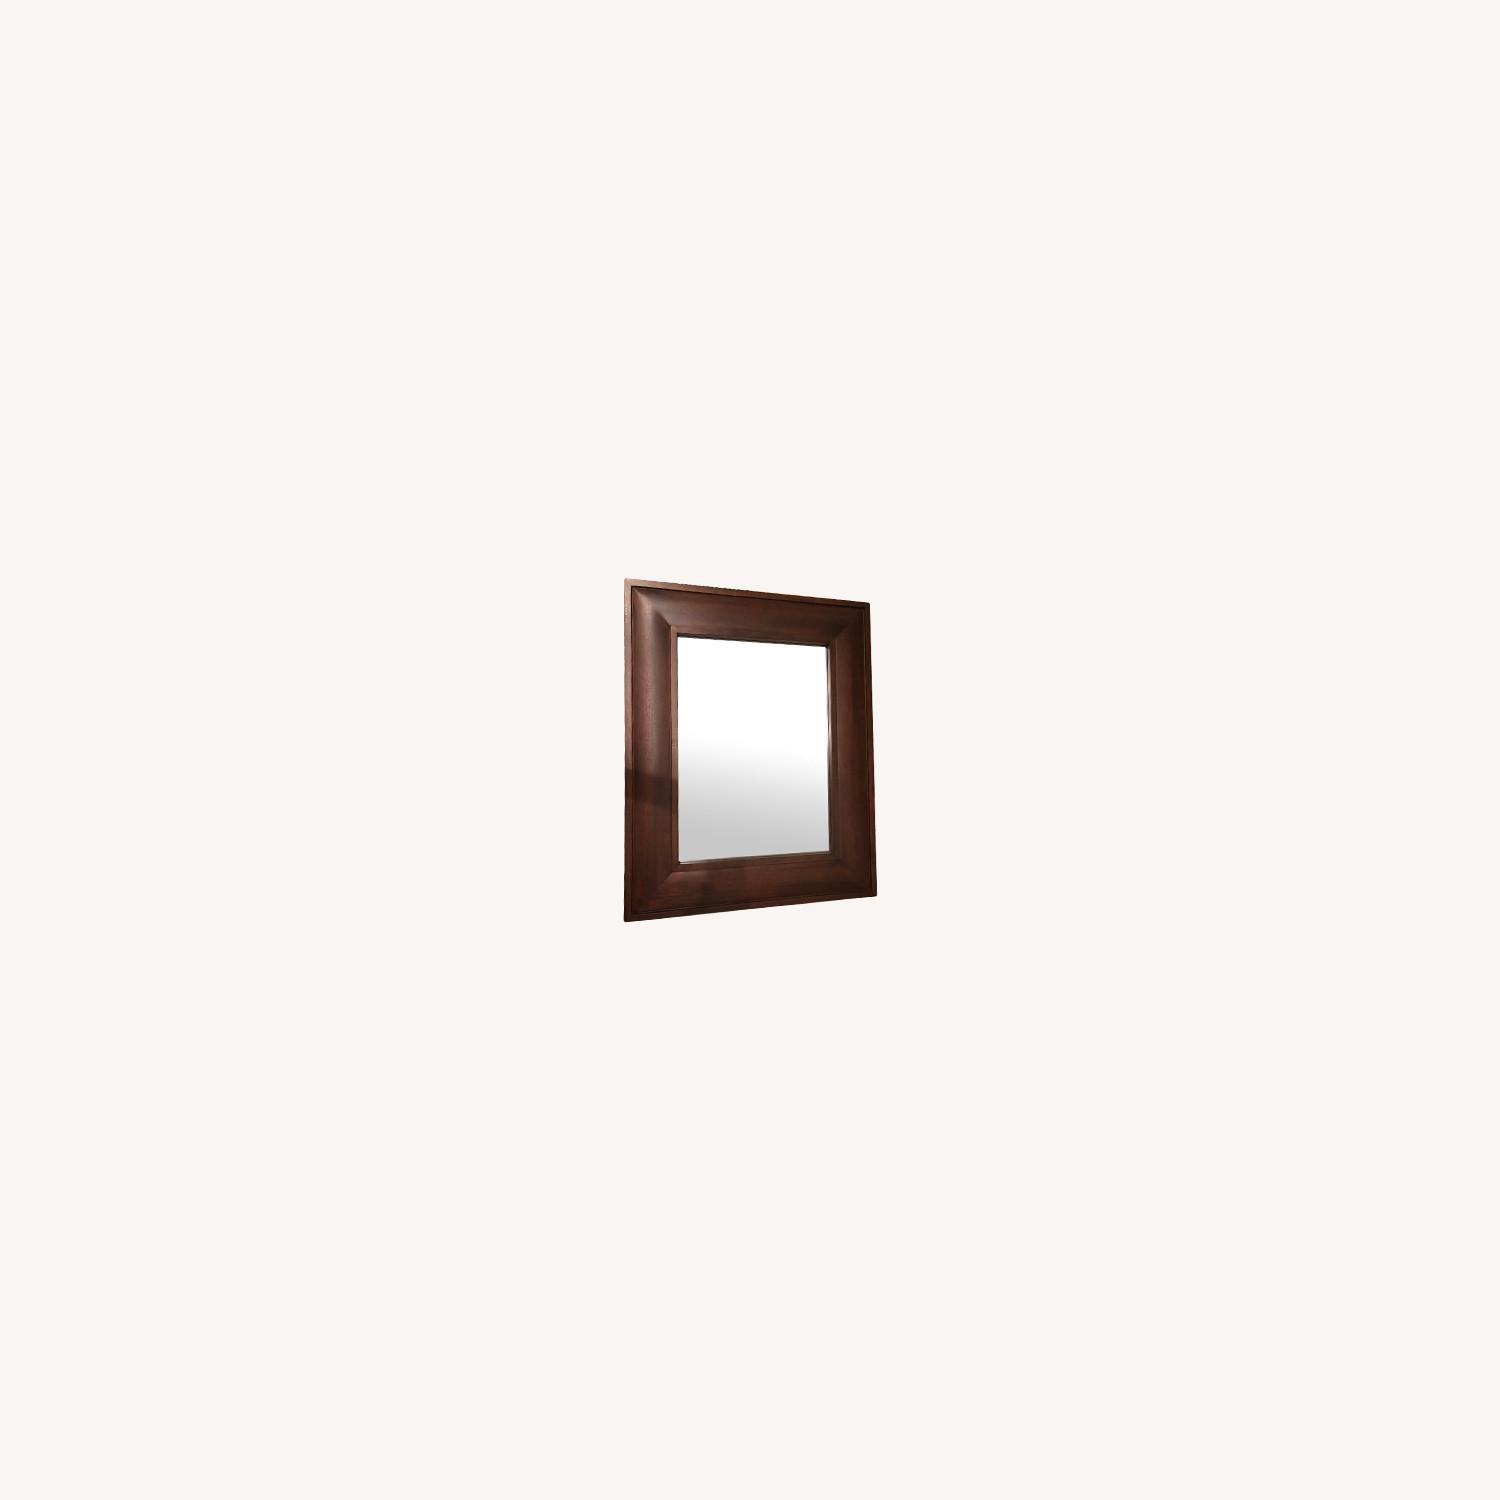 Pottery Barn Wooden Mirror - image-3